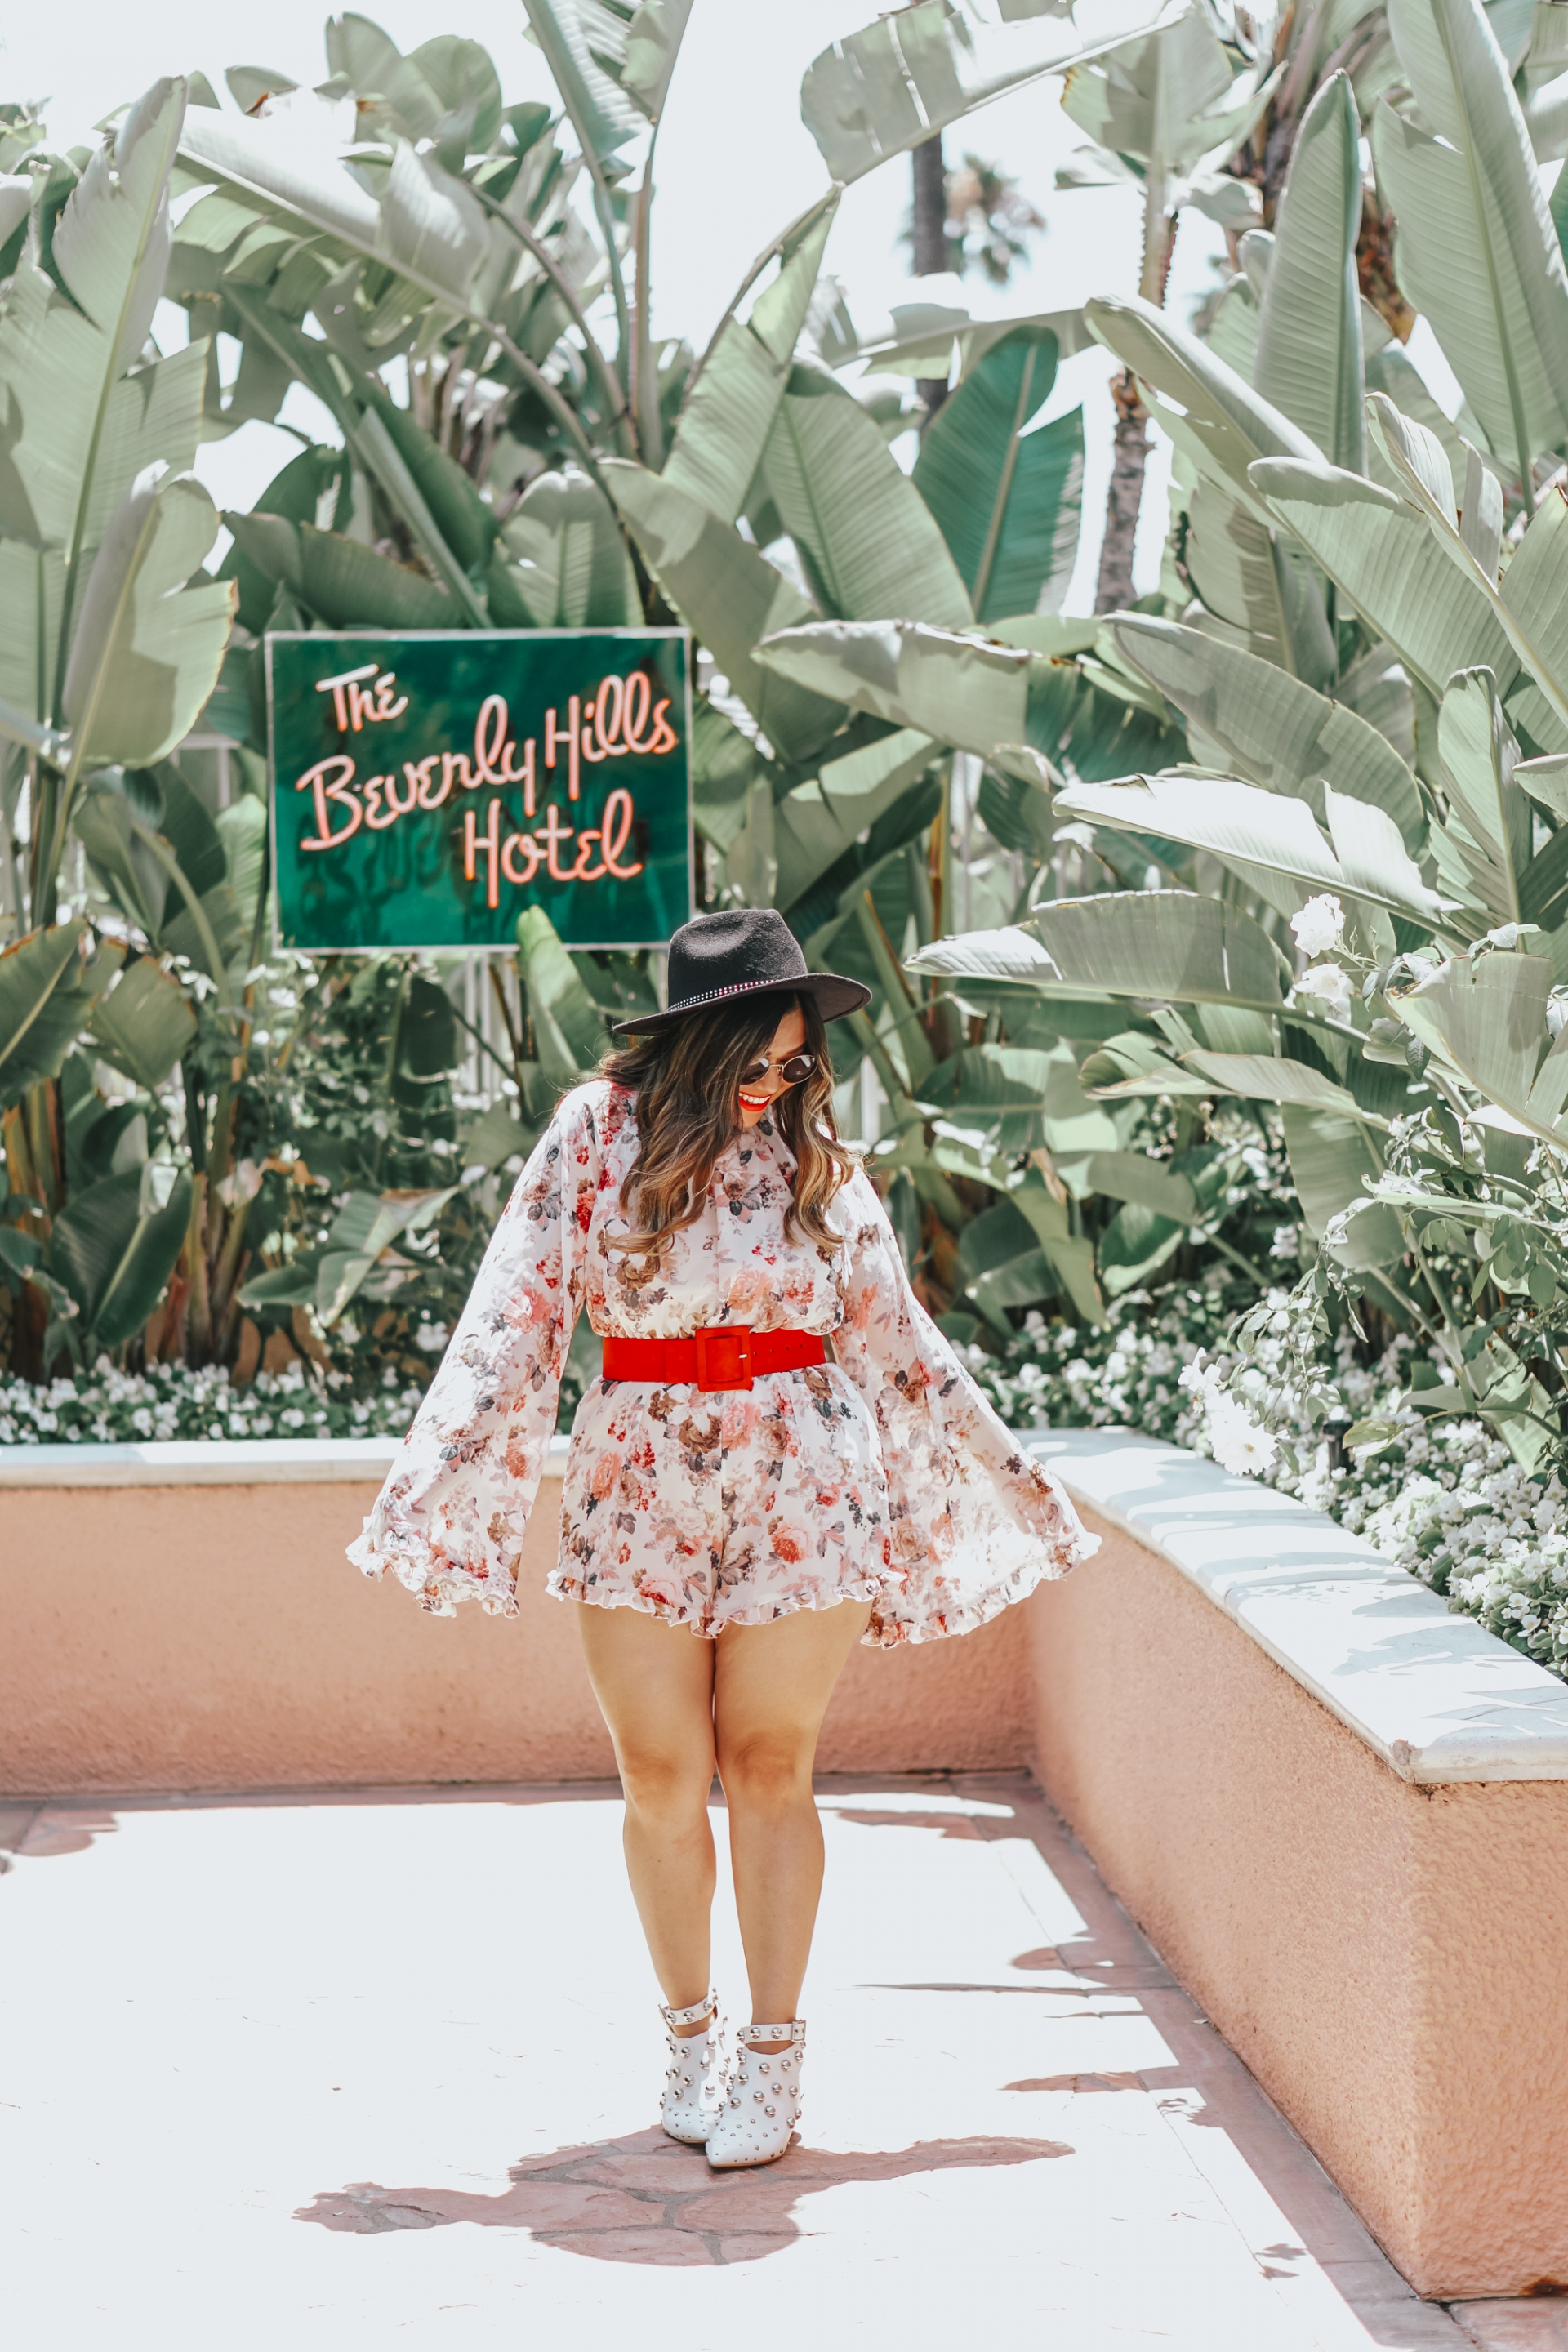 Dramatic Sleeves Floral Romper Shein Exaggerated Bell Sleeve Frill Detail Romper Qupid Shoes Square-01 White Studded Mule Sandal Booties Black Fedora Hat Express Red Rectangle Buckle Belt